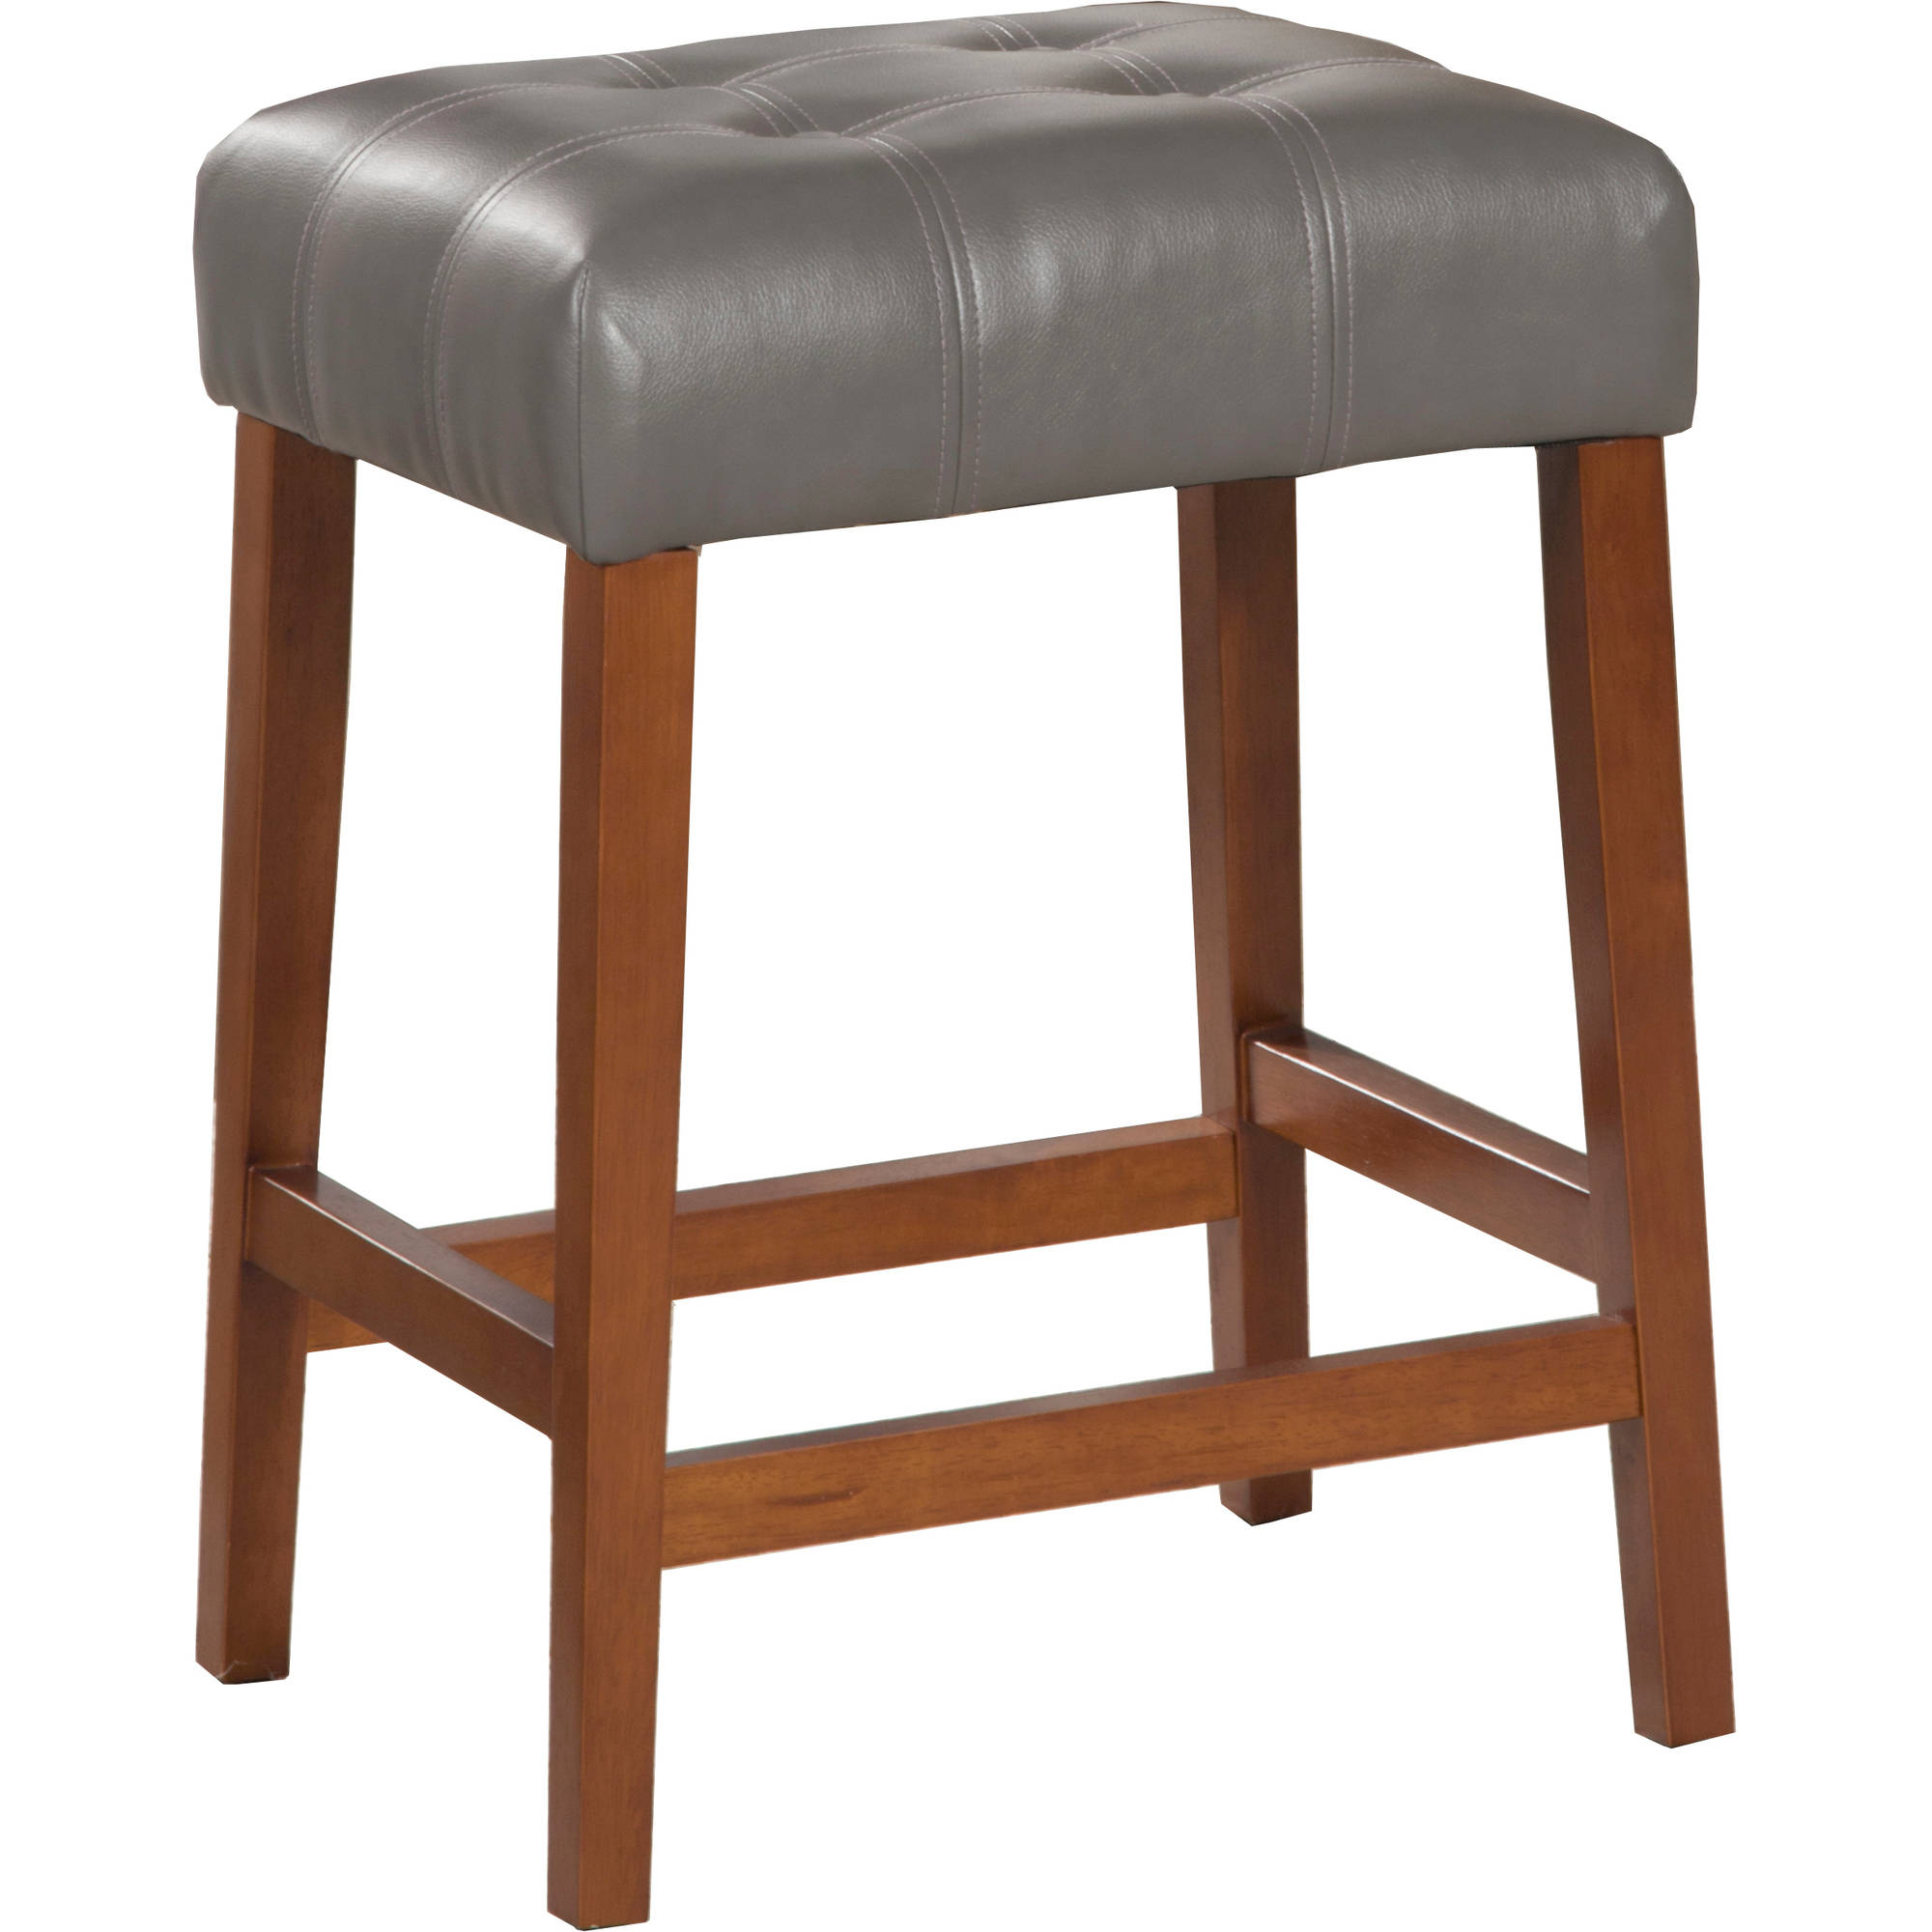 "HomePop 24"" Square Counter Stool, Multiple Colors"